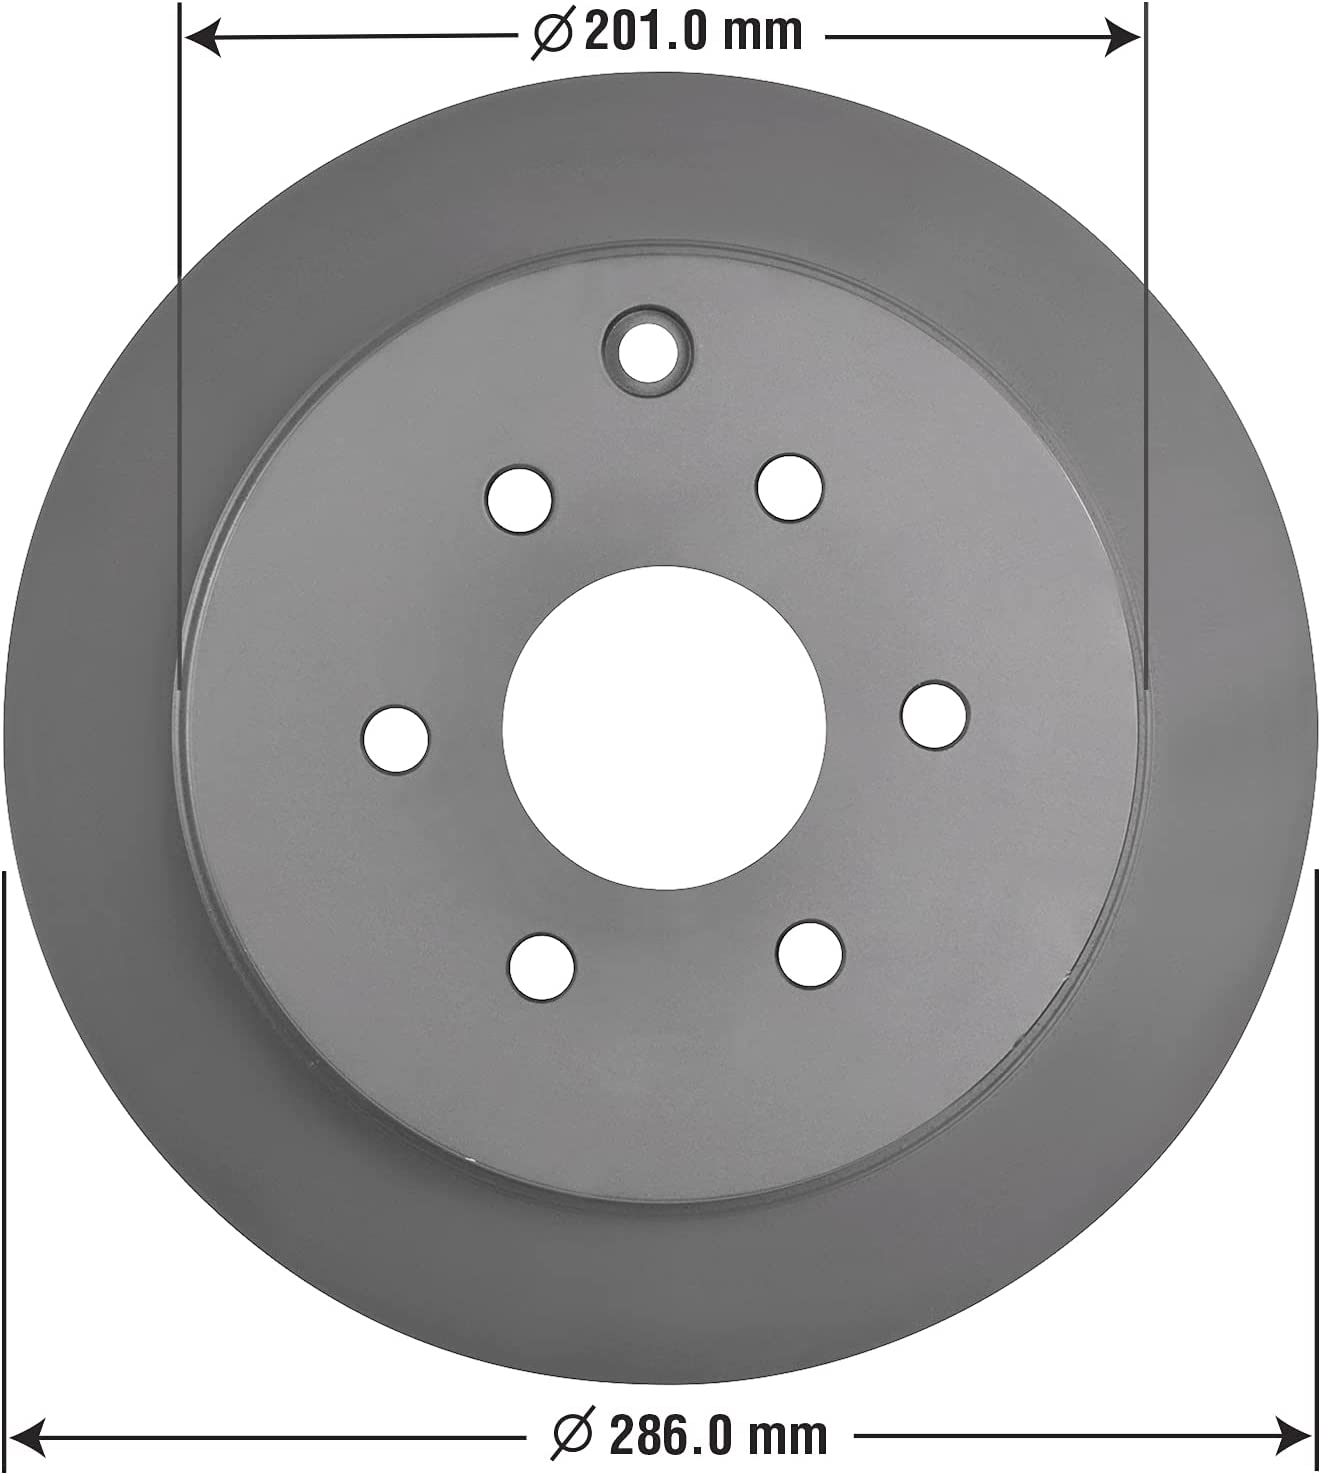 Goodyear Brakes 212322GY Truck Max 58% OFF SUV AntiOx R Rear Popular brand Brake Coated